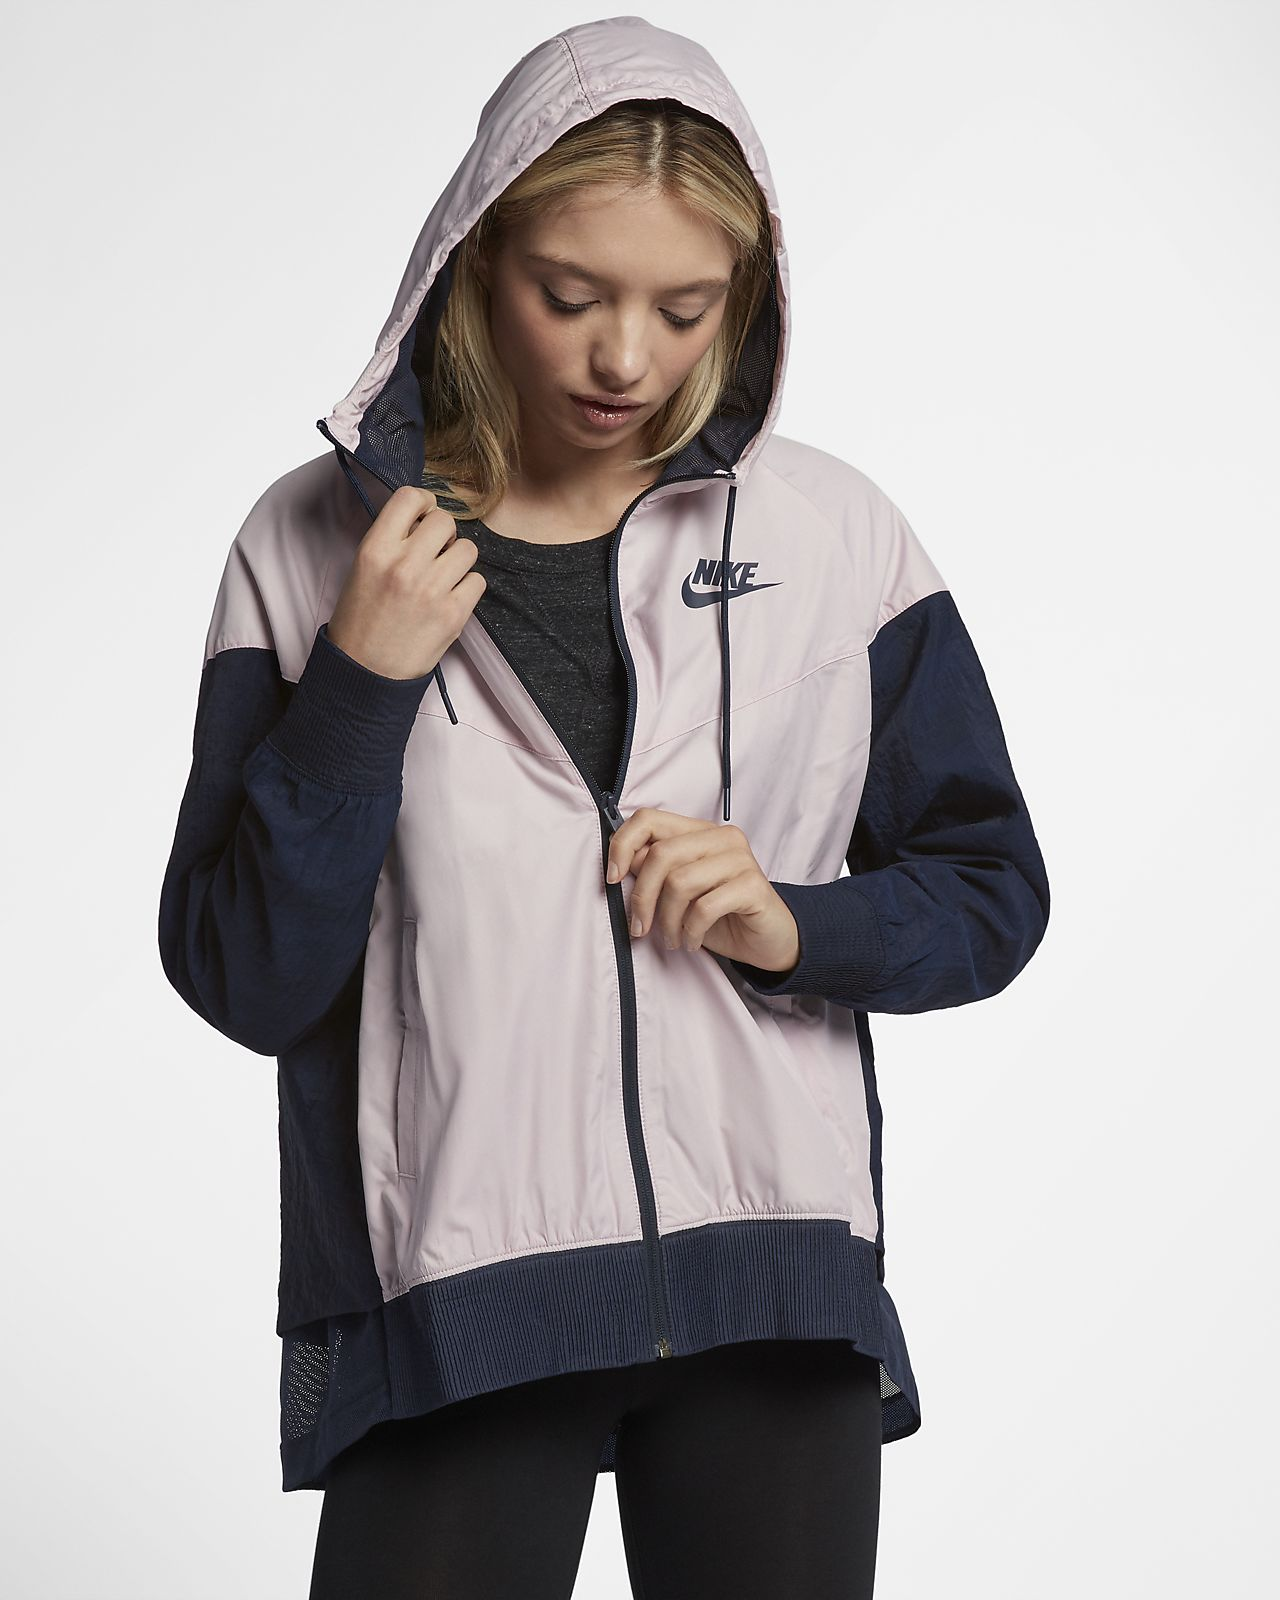 Low Resolution Nike Sportswear Windrunner Women's Jacket Nike Sportswear  Windrunner Women's Jacket